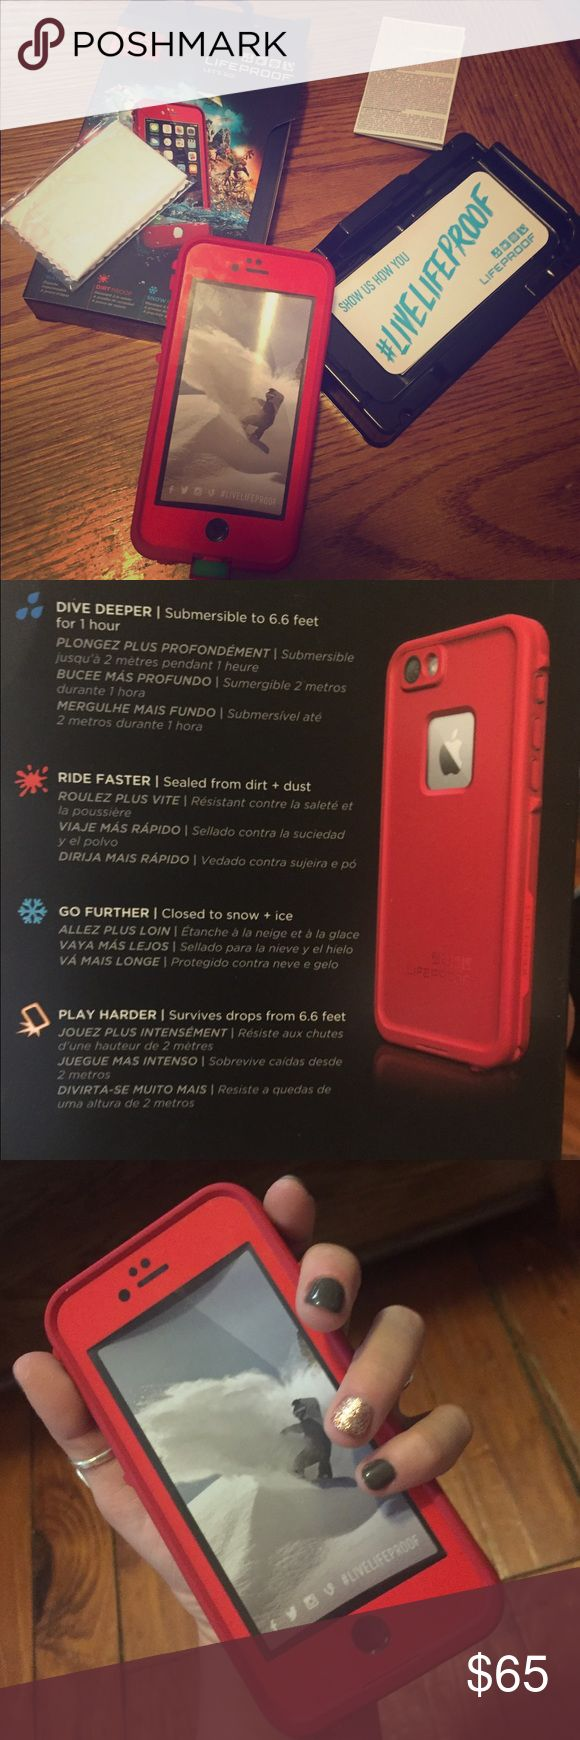 LIKENEW waterproof iPhone 6 Lifeproof case!  Complete package for Lifeproof case in limited discontinued Cherry Red color!! iPhone 6 case that is water proof, drop proof, shock proof, scratch proof! Guaranteed through Lifeproof! comes with box, aux cord extender, instructions, water proof seal help, cleaning cloth, new stickers, and case! completely tested for guarantee of water proof seal! 6.6 feet of water, snow, ice, dirt, and dust! can be dropped 6.6 feet!! new but taken out and tried…